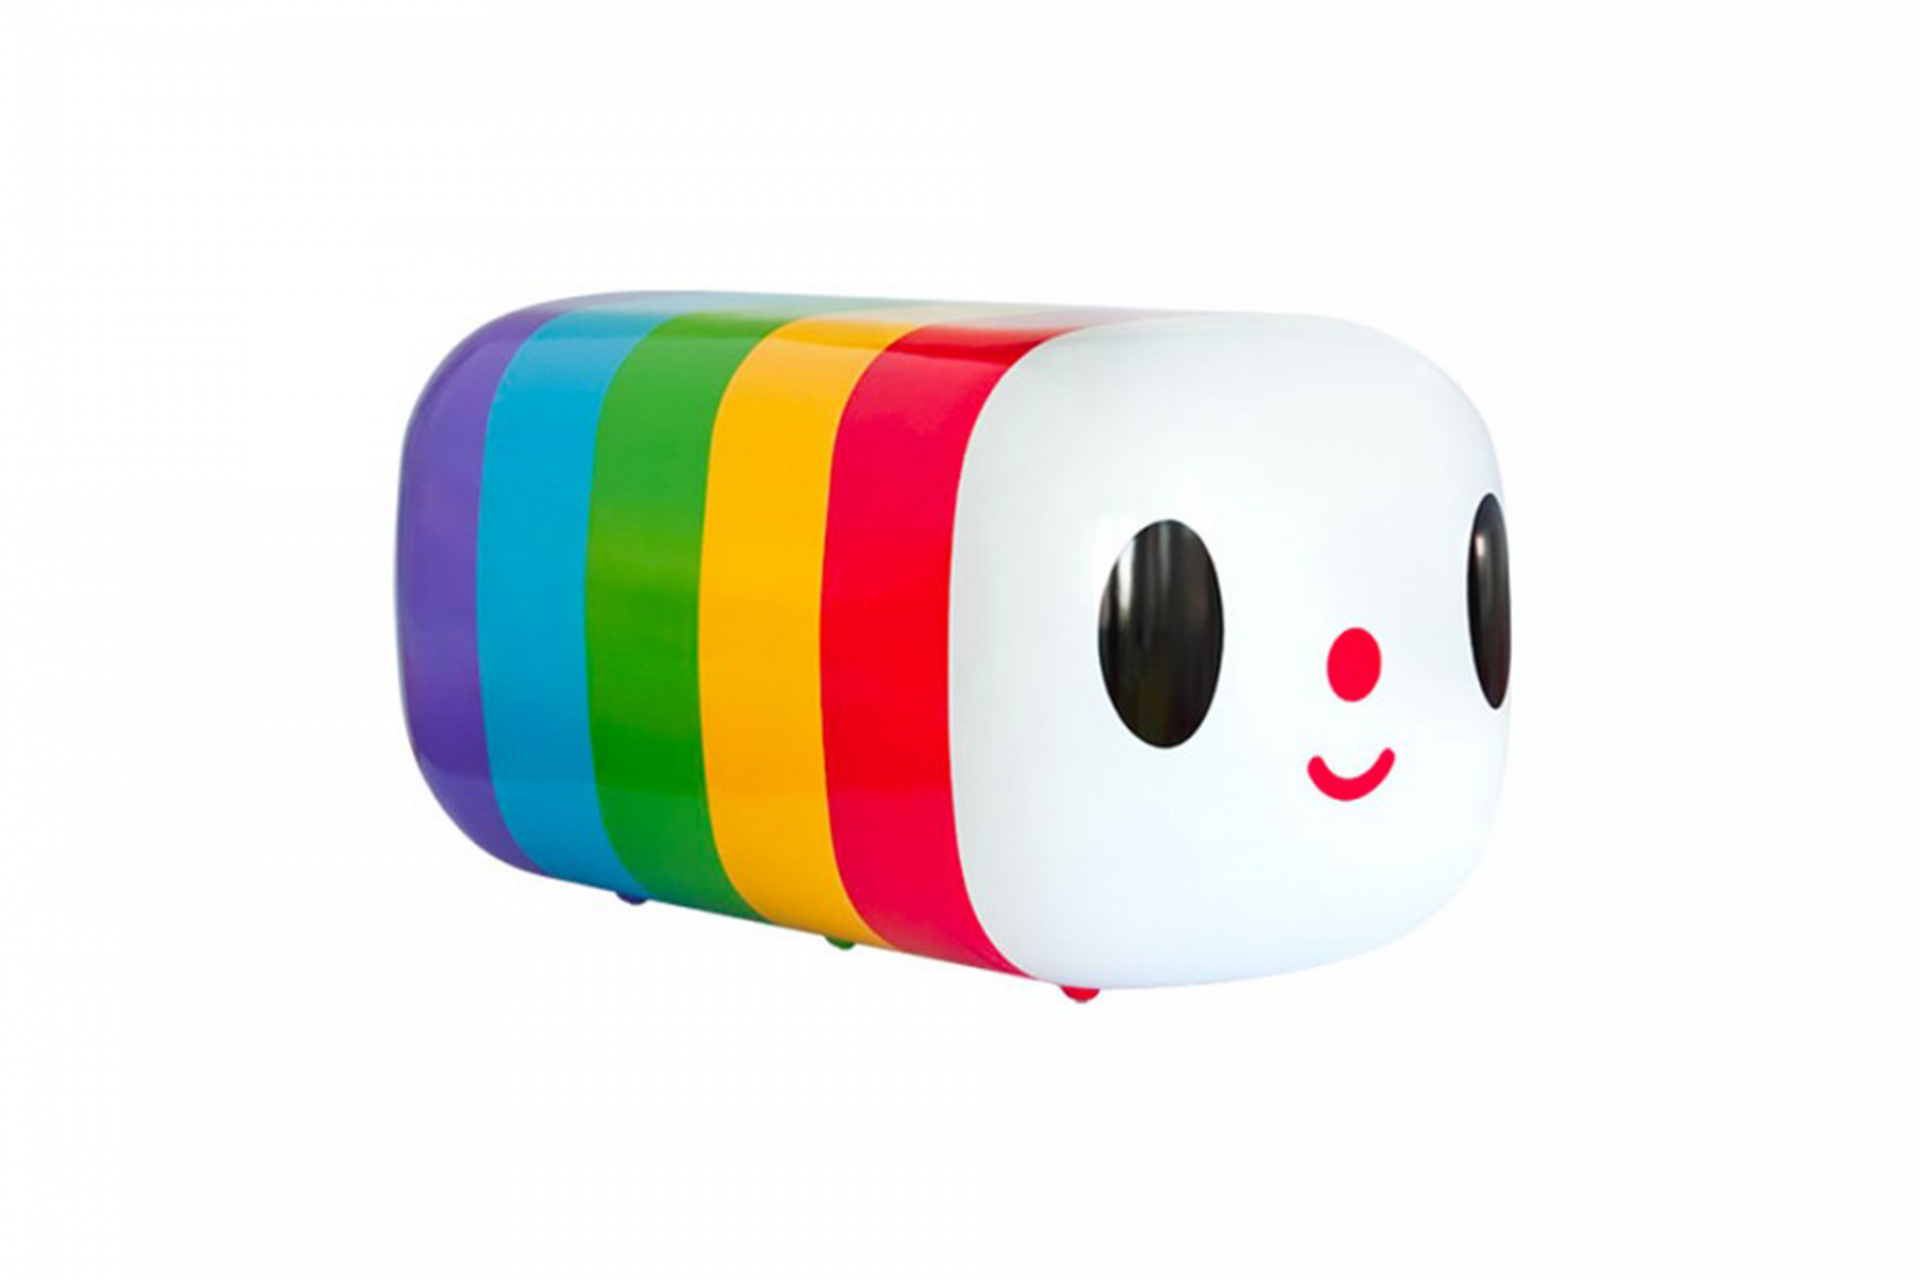 Rainbow TTT Bench Limited Edition Series, 2010